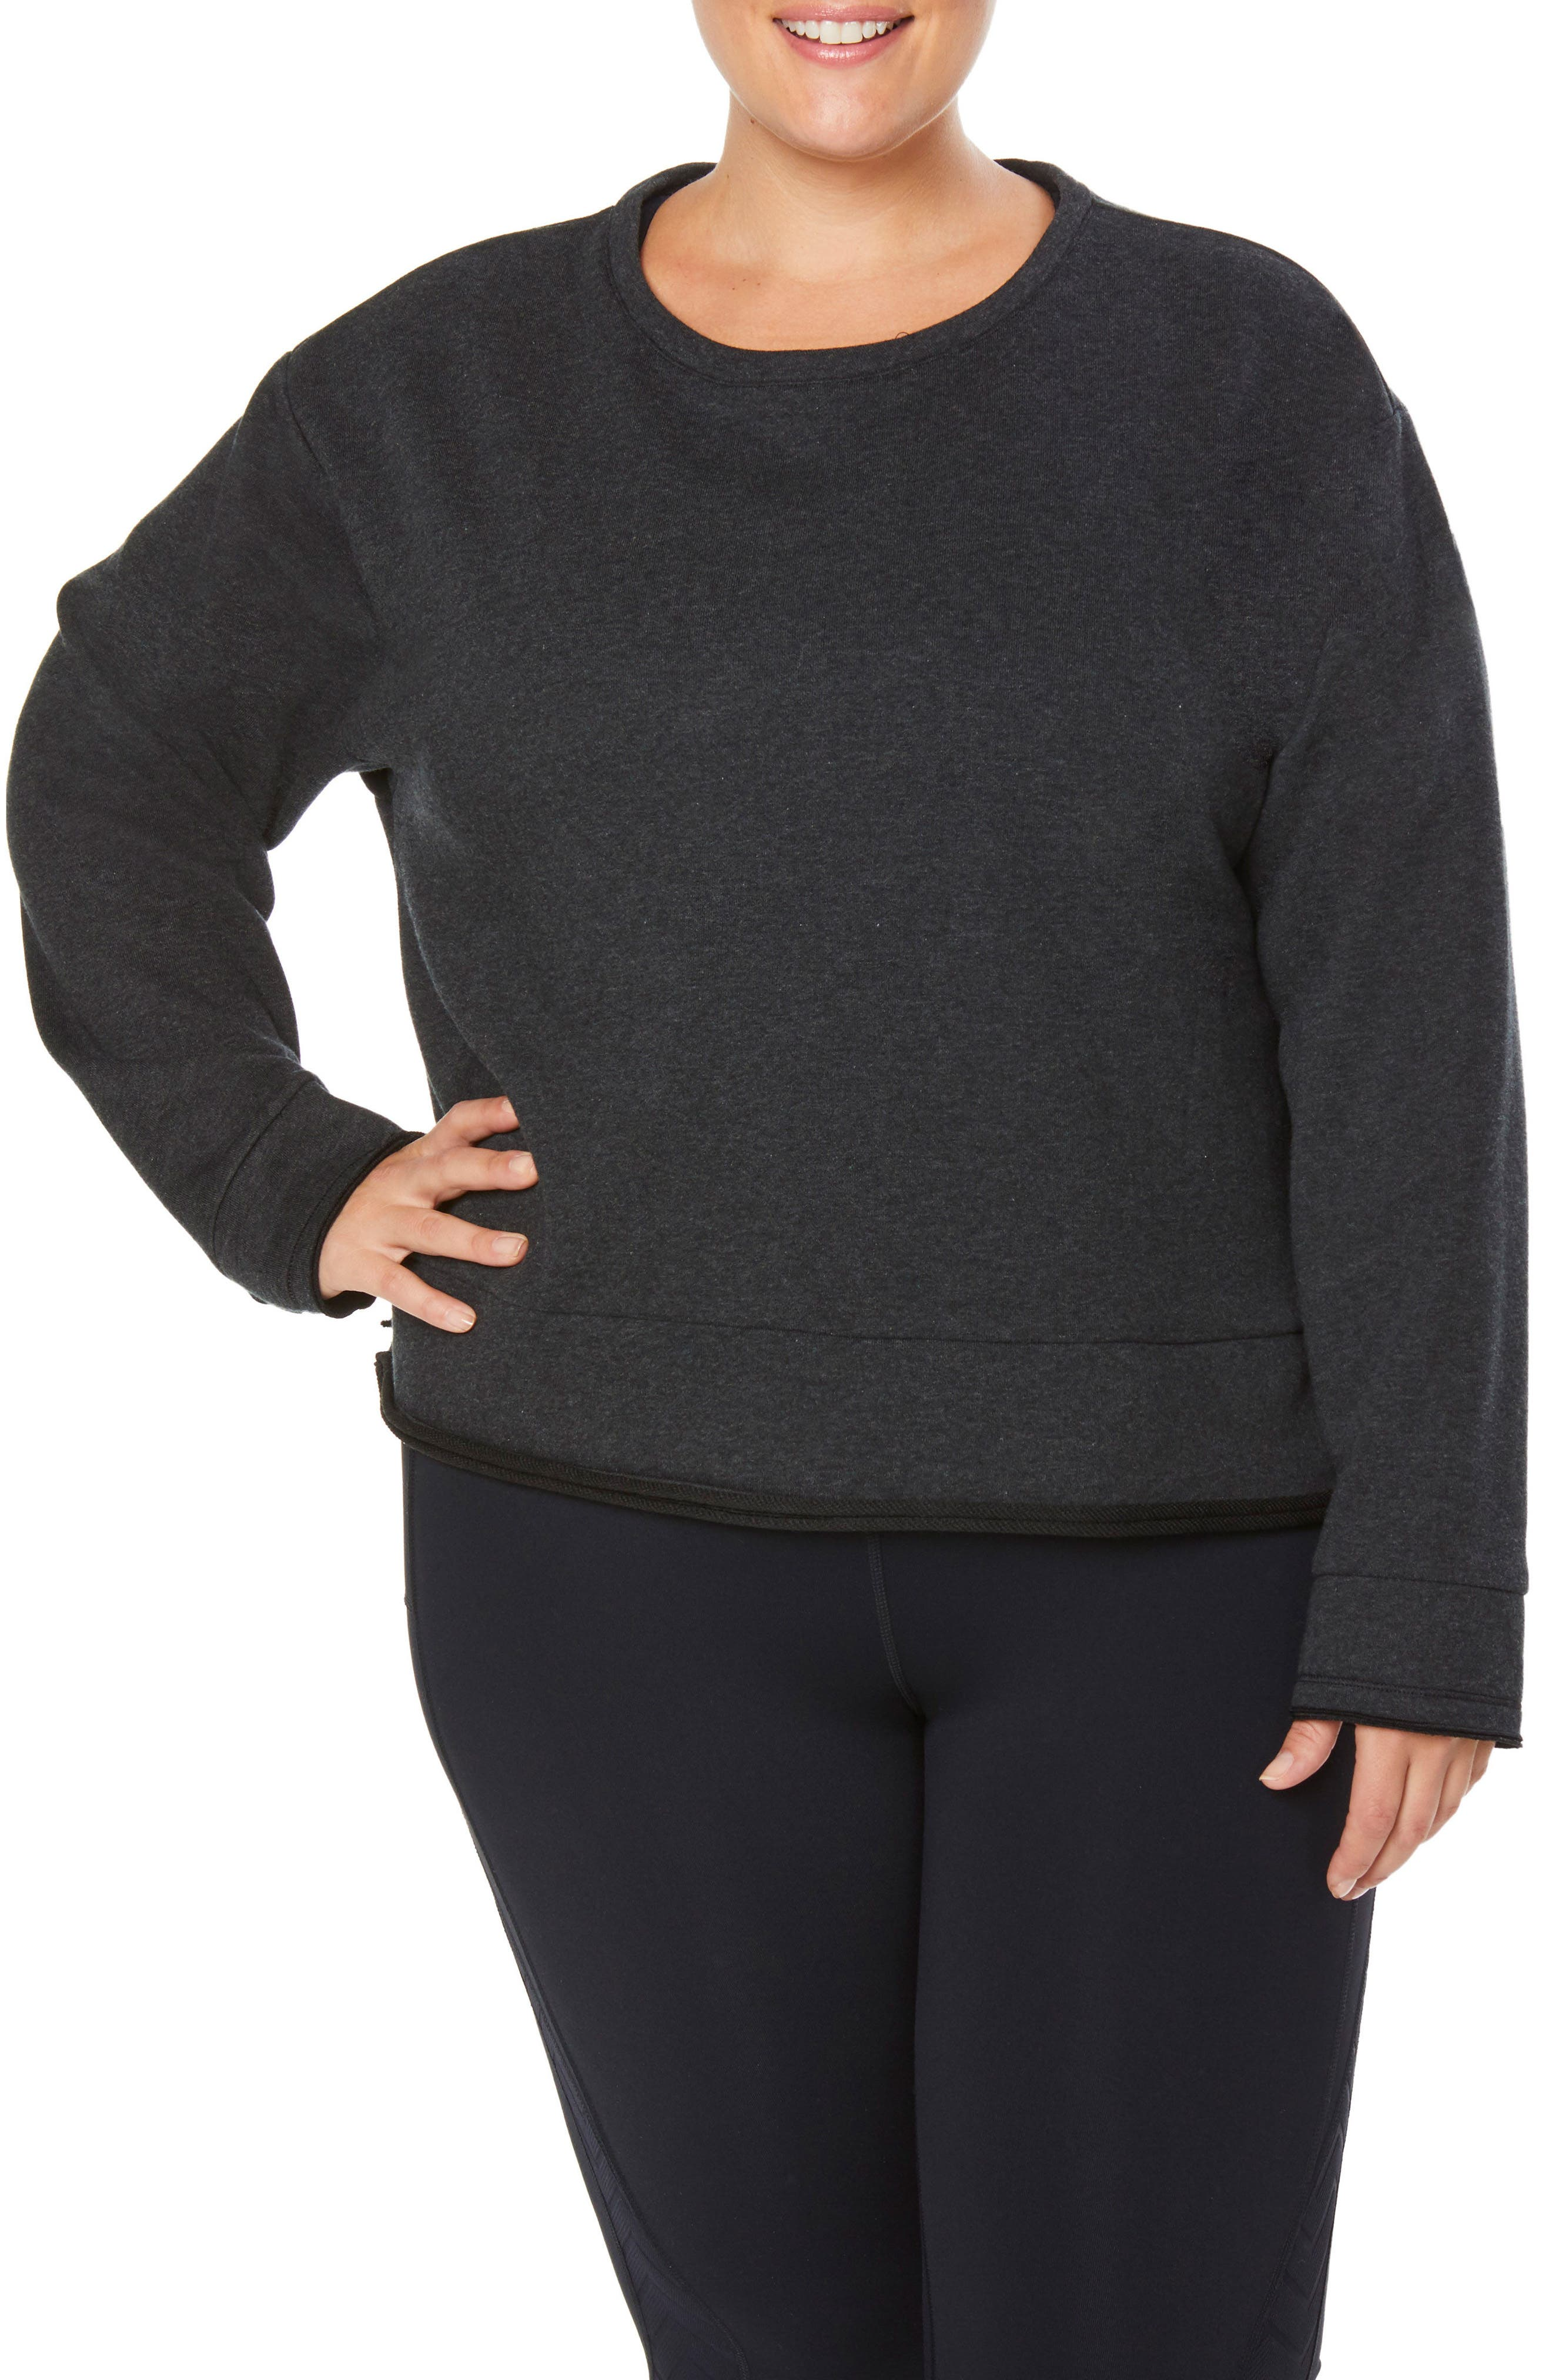 Shape Extended Day Sweatshirt,                         Main,                         color, CHARCOAL BLACK